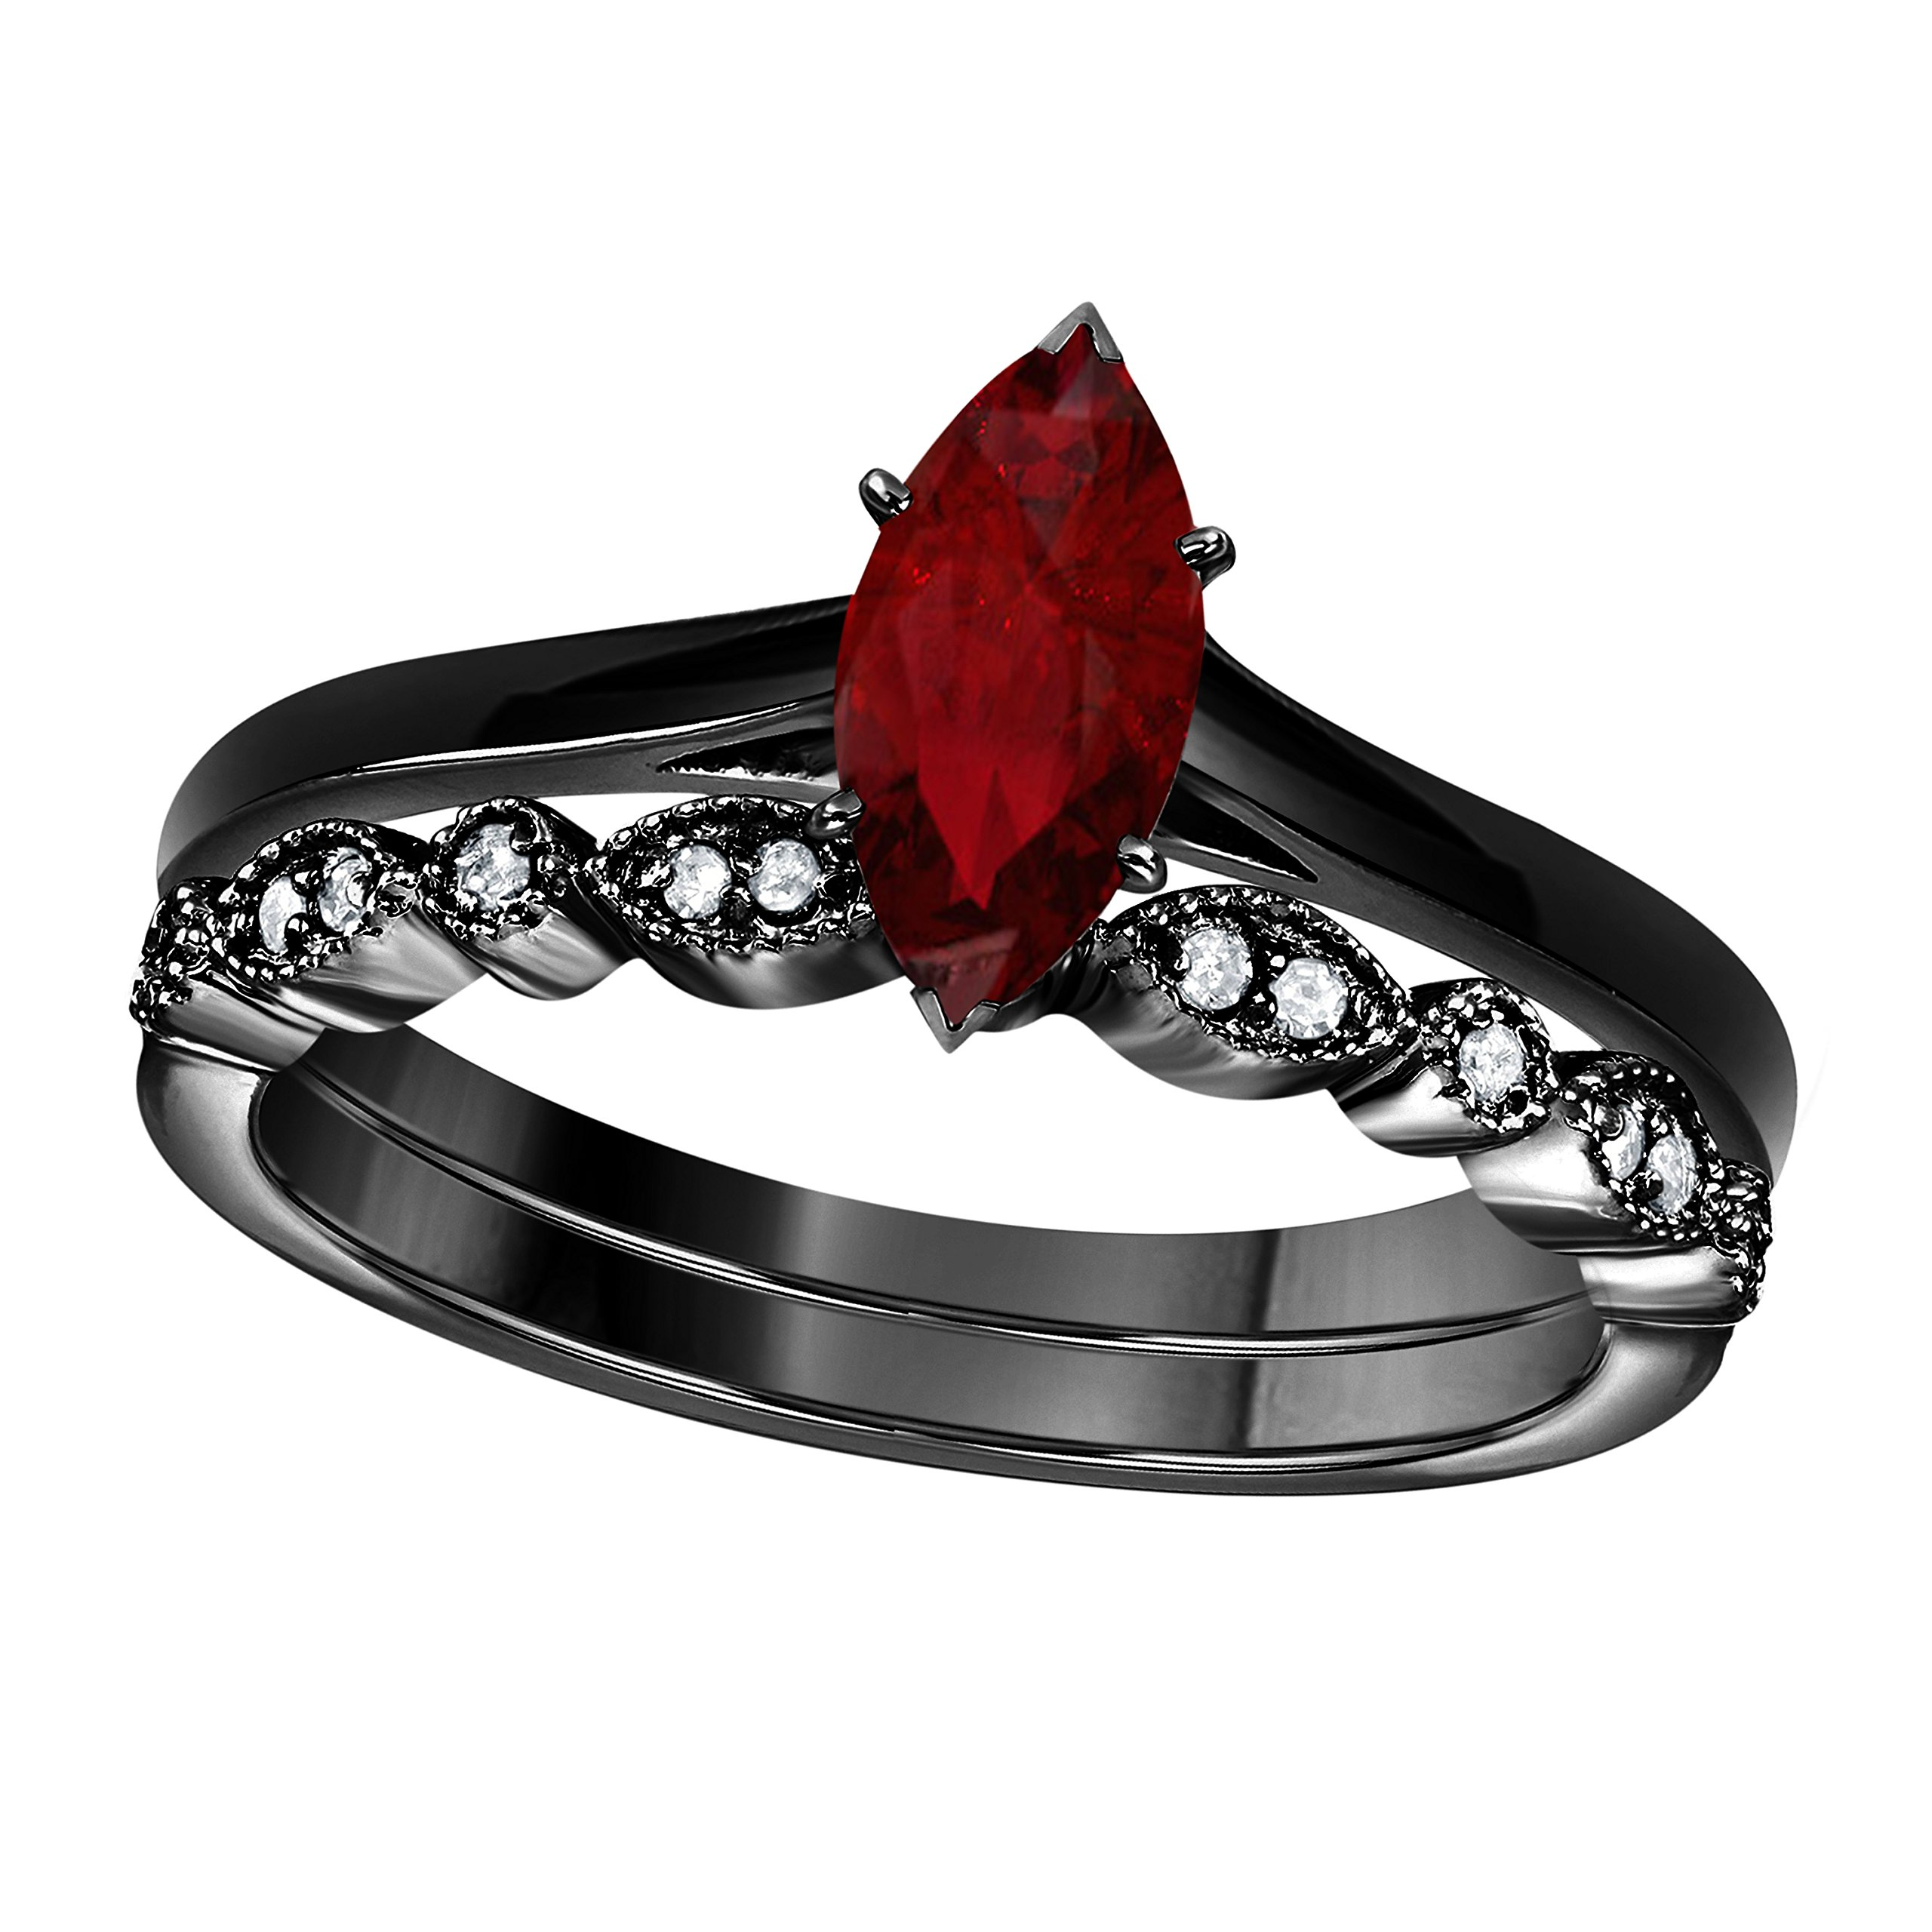 DreamJewels 1.00 Ct Marquise Shape & Round Cut Red Ruby & White CZ Diamond 14k Black Gold Finish Alloy Art Deco Vintage Design Wedding Engagement Ring Sets Size 4.5-12